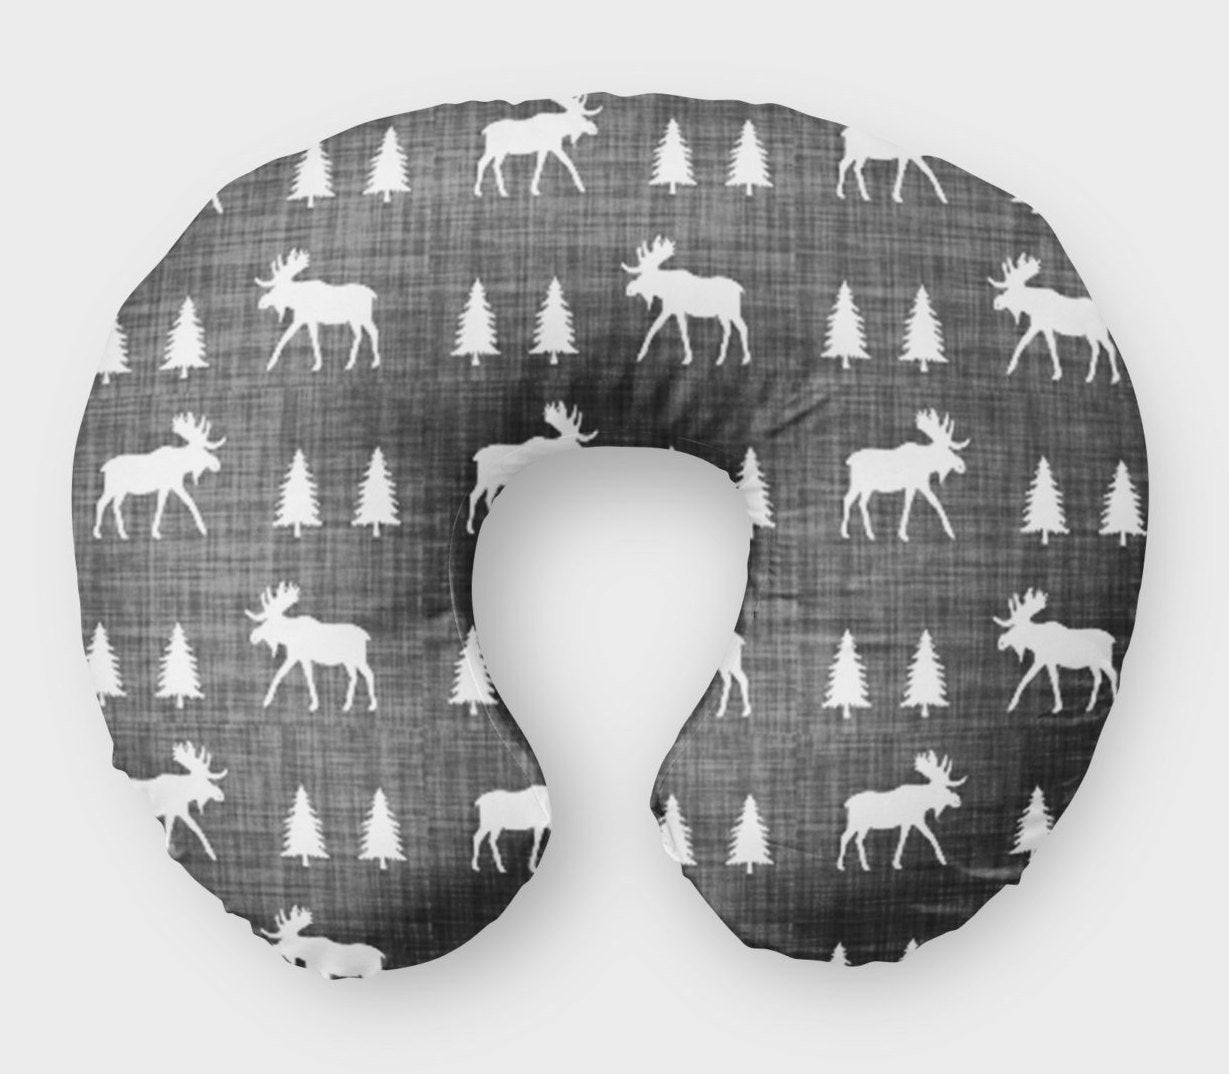 Moose Boppy Cover - Woodland Pine Trees Grey - Dream Evergreen @DreamEvergreen